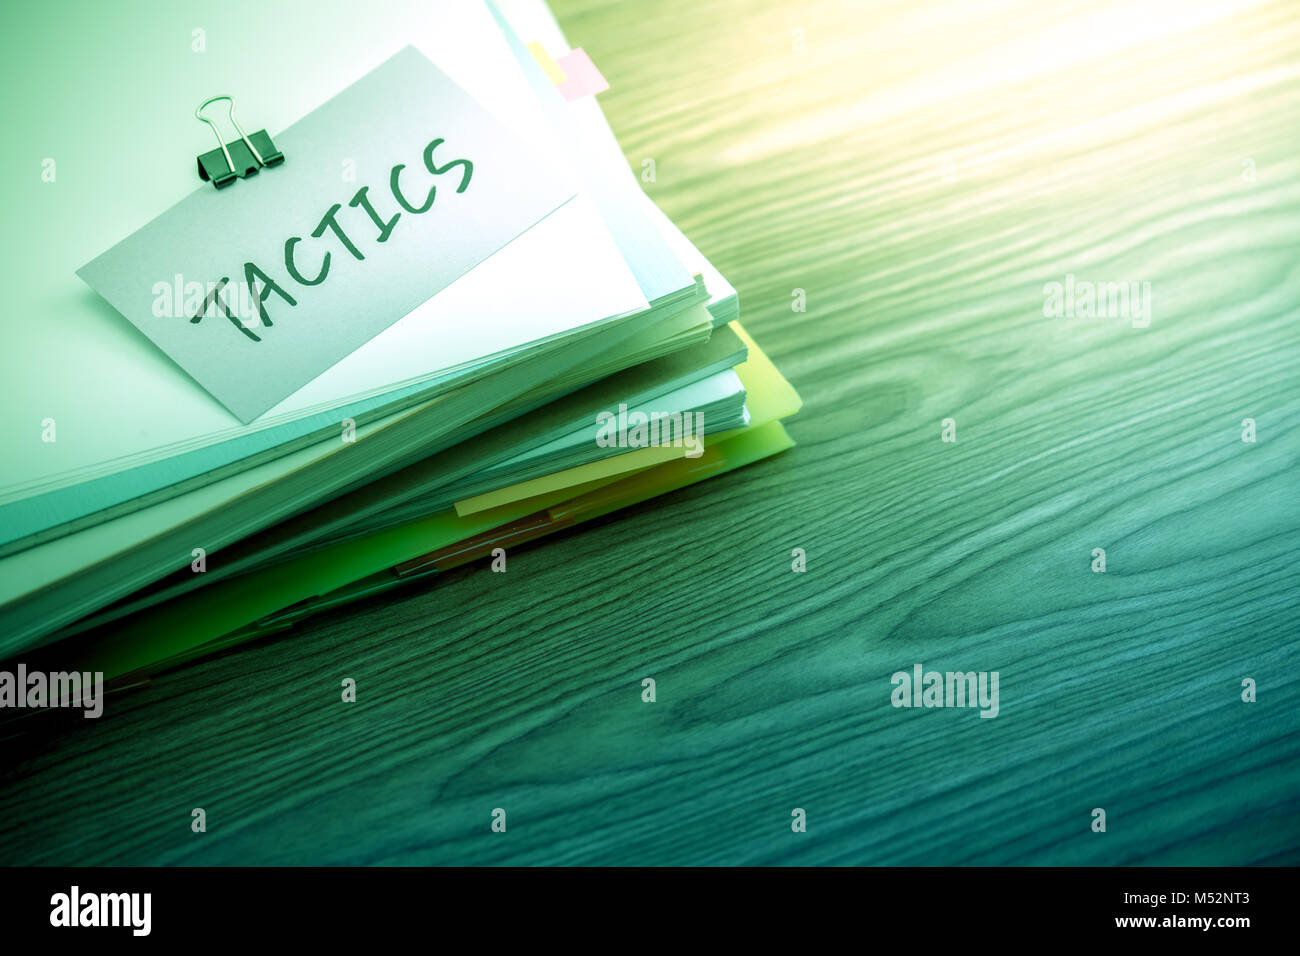 Tactics; The Pile of Business Documents on the Desk - Stock Image